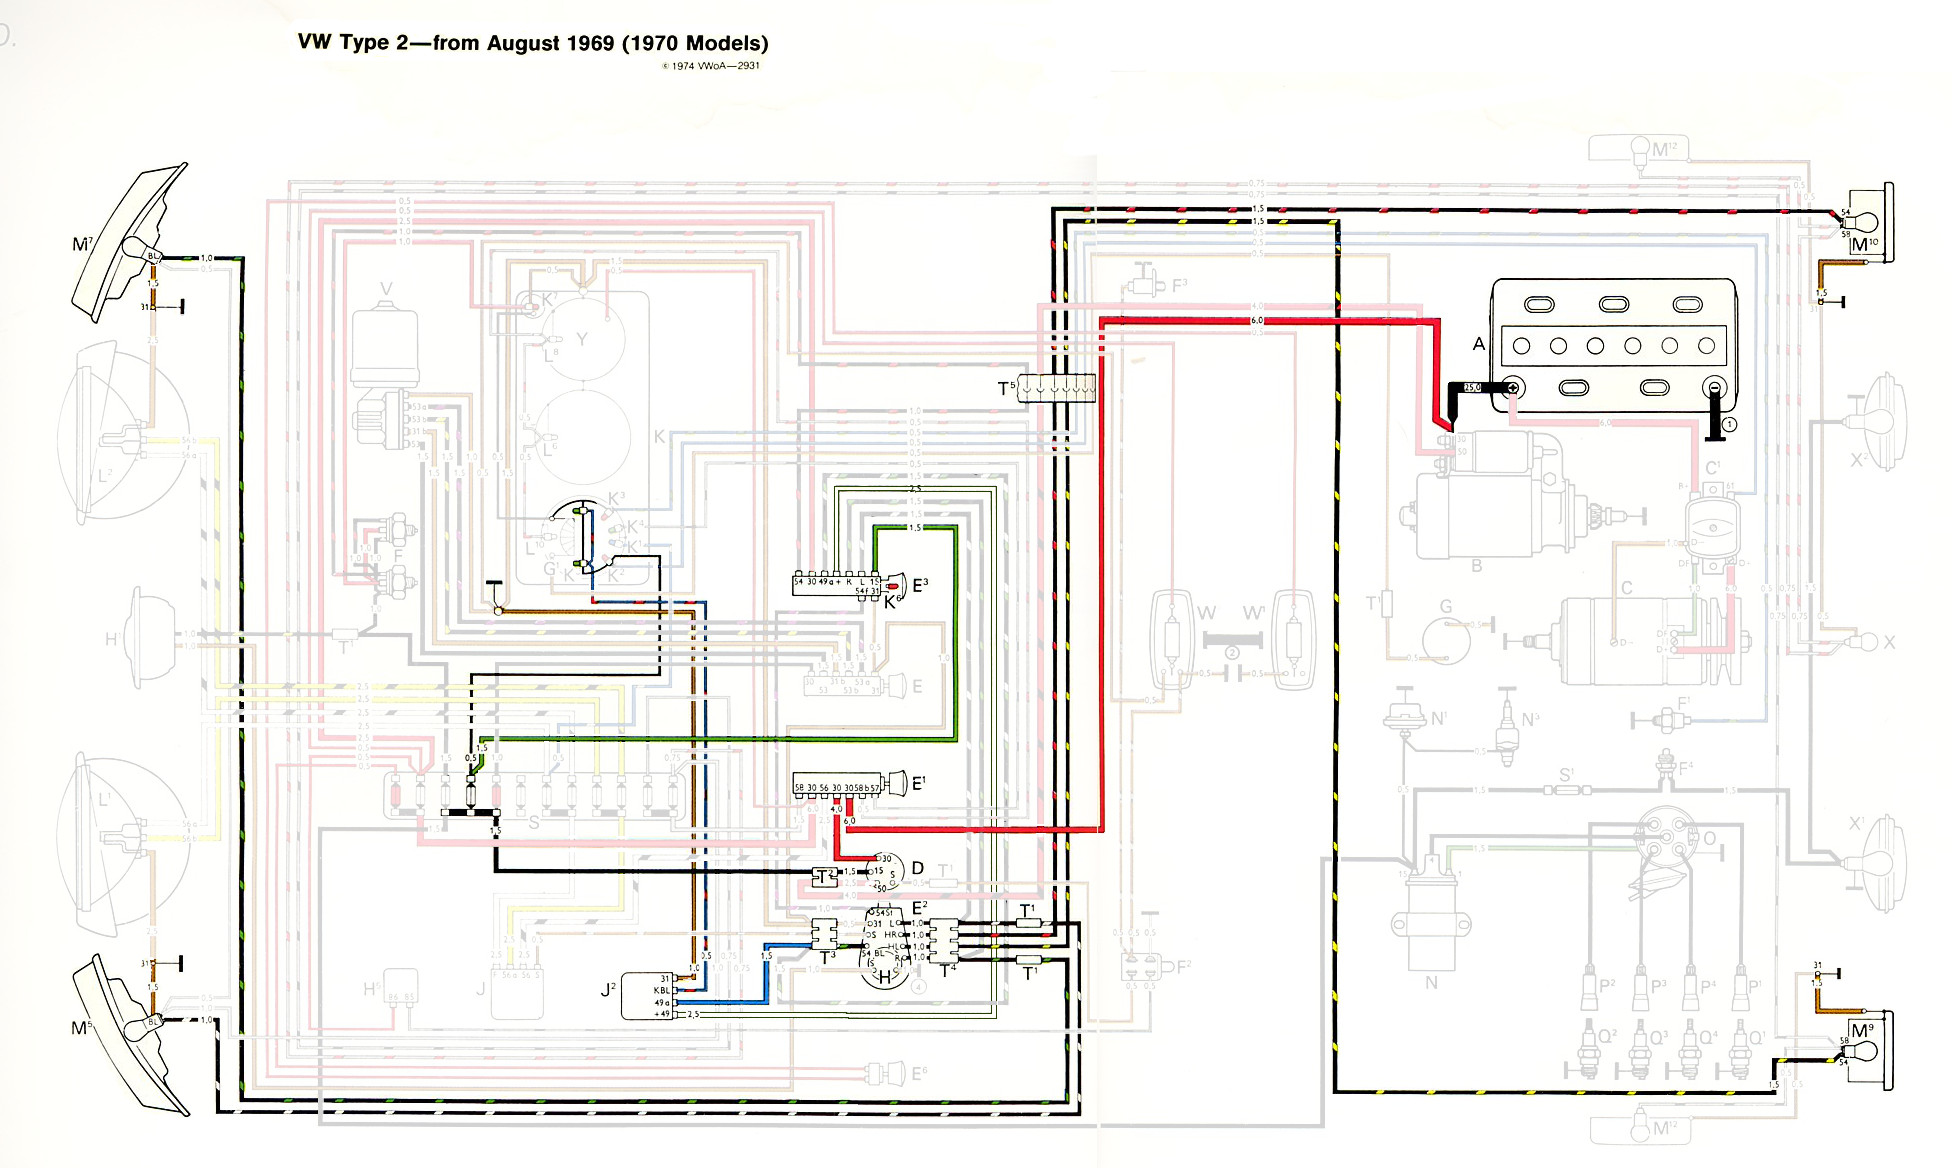 1973 vw van wiring diagram trusted wiring diagrams u2022 rh sivamuni com